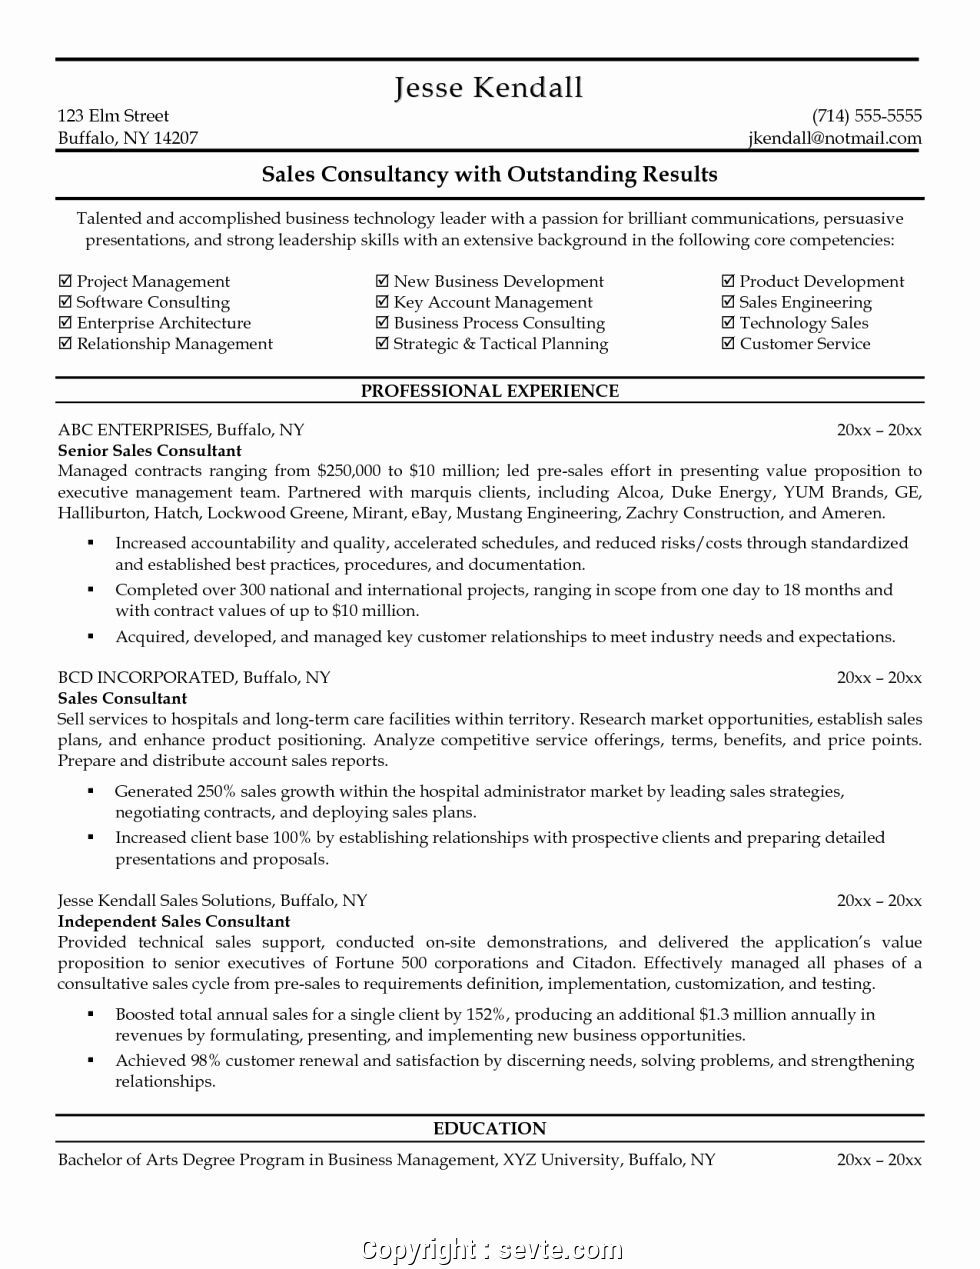 Independent Consultant Resume Example Luxury New Sales And Marketing Consultant Resume Resume For Ind Resume Examples Job Resume Examples Sales Resume Examples